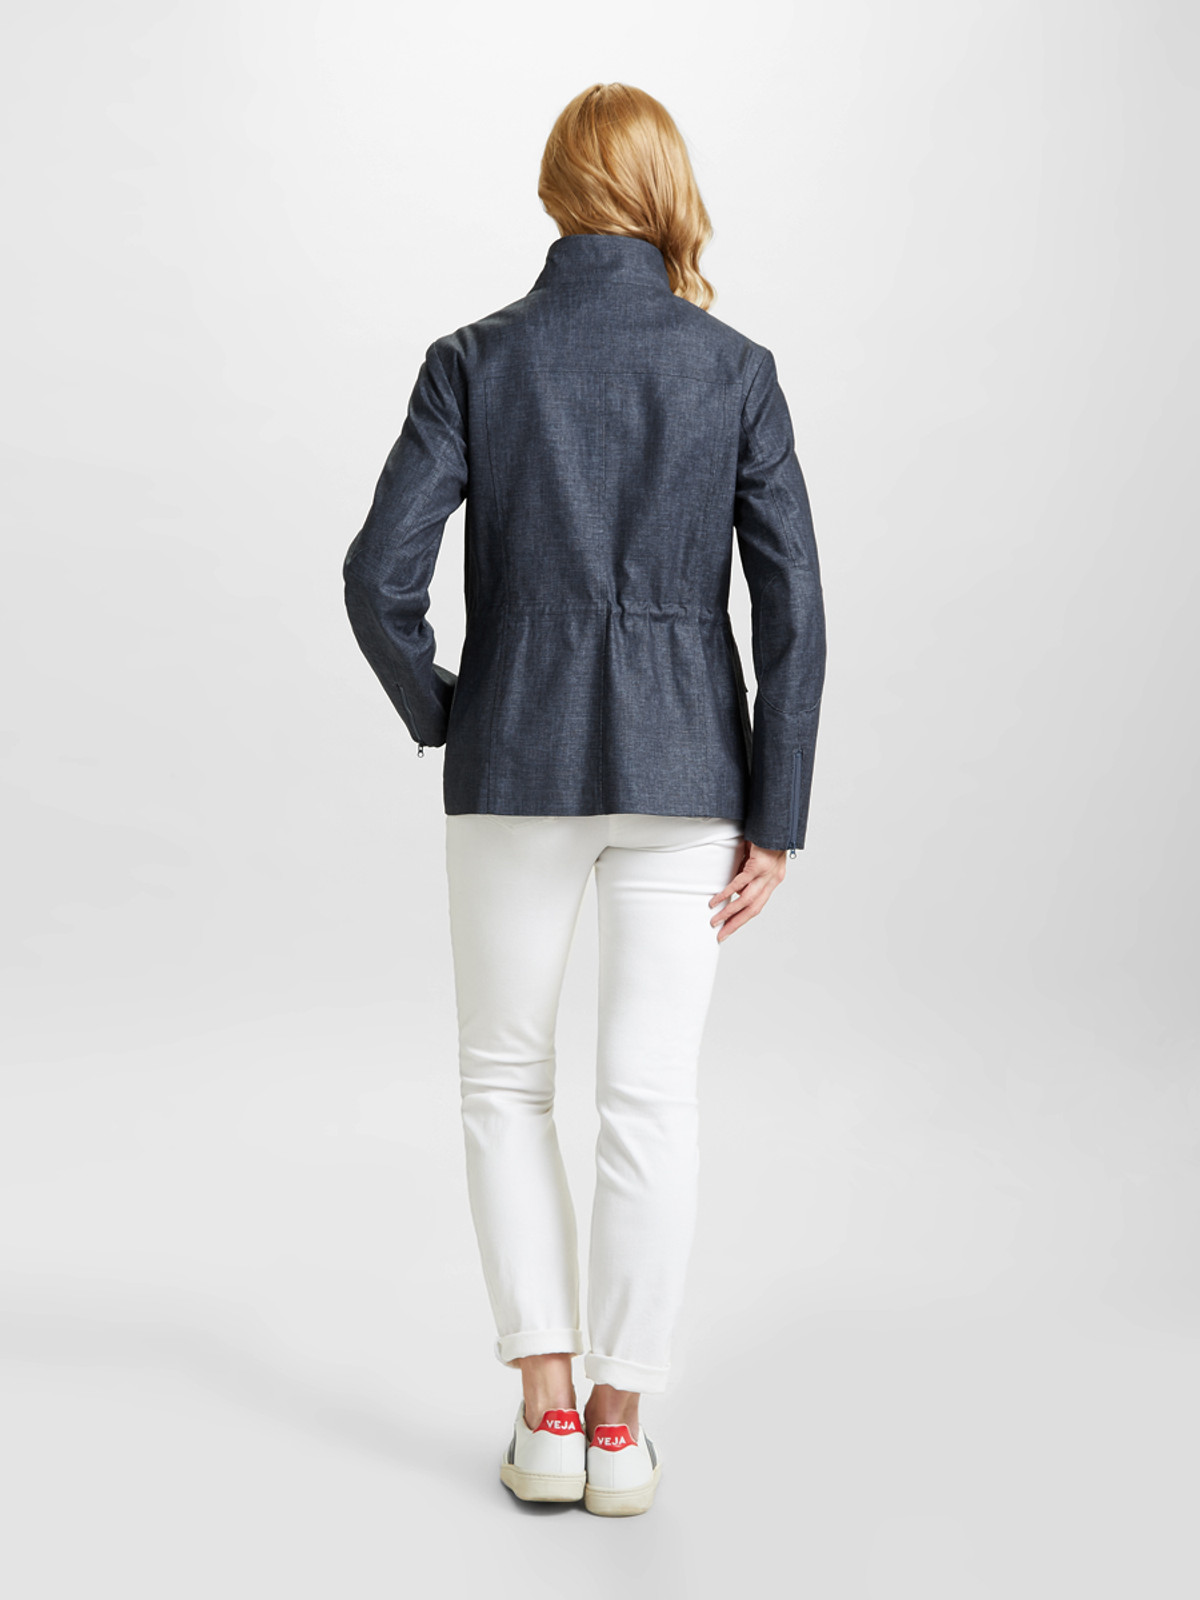 BRIMDOWN – Linen Look Safari Jacket, Denim